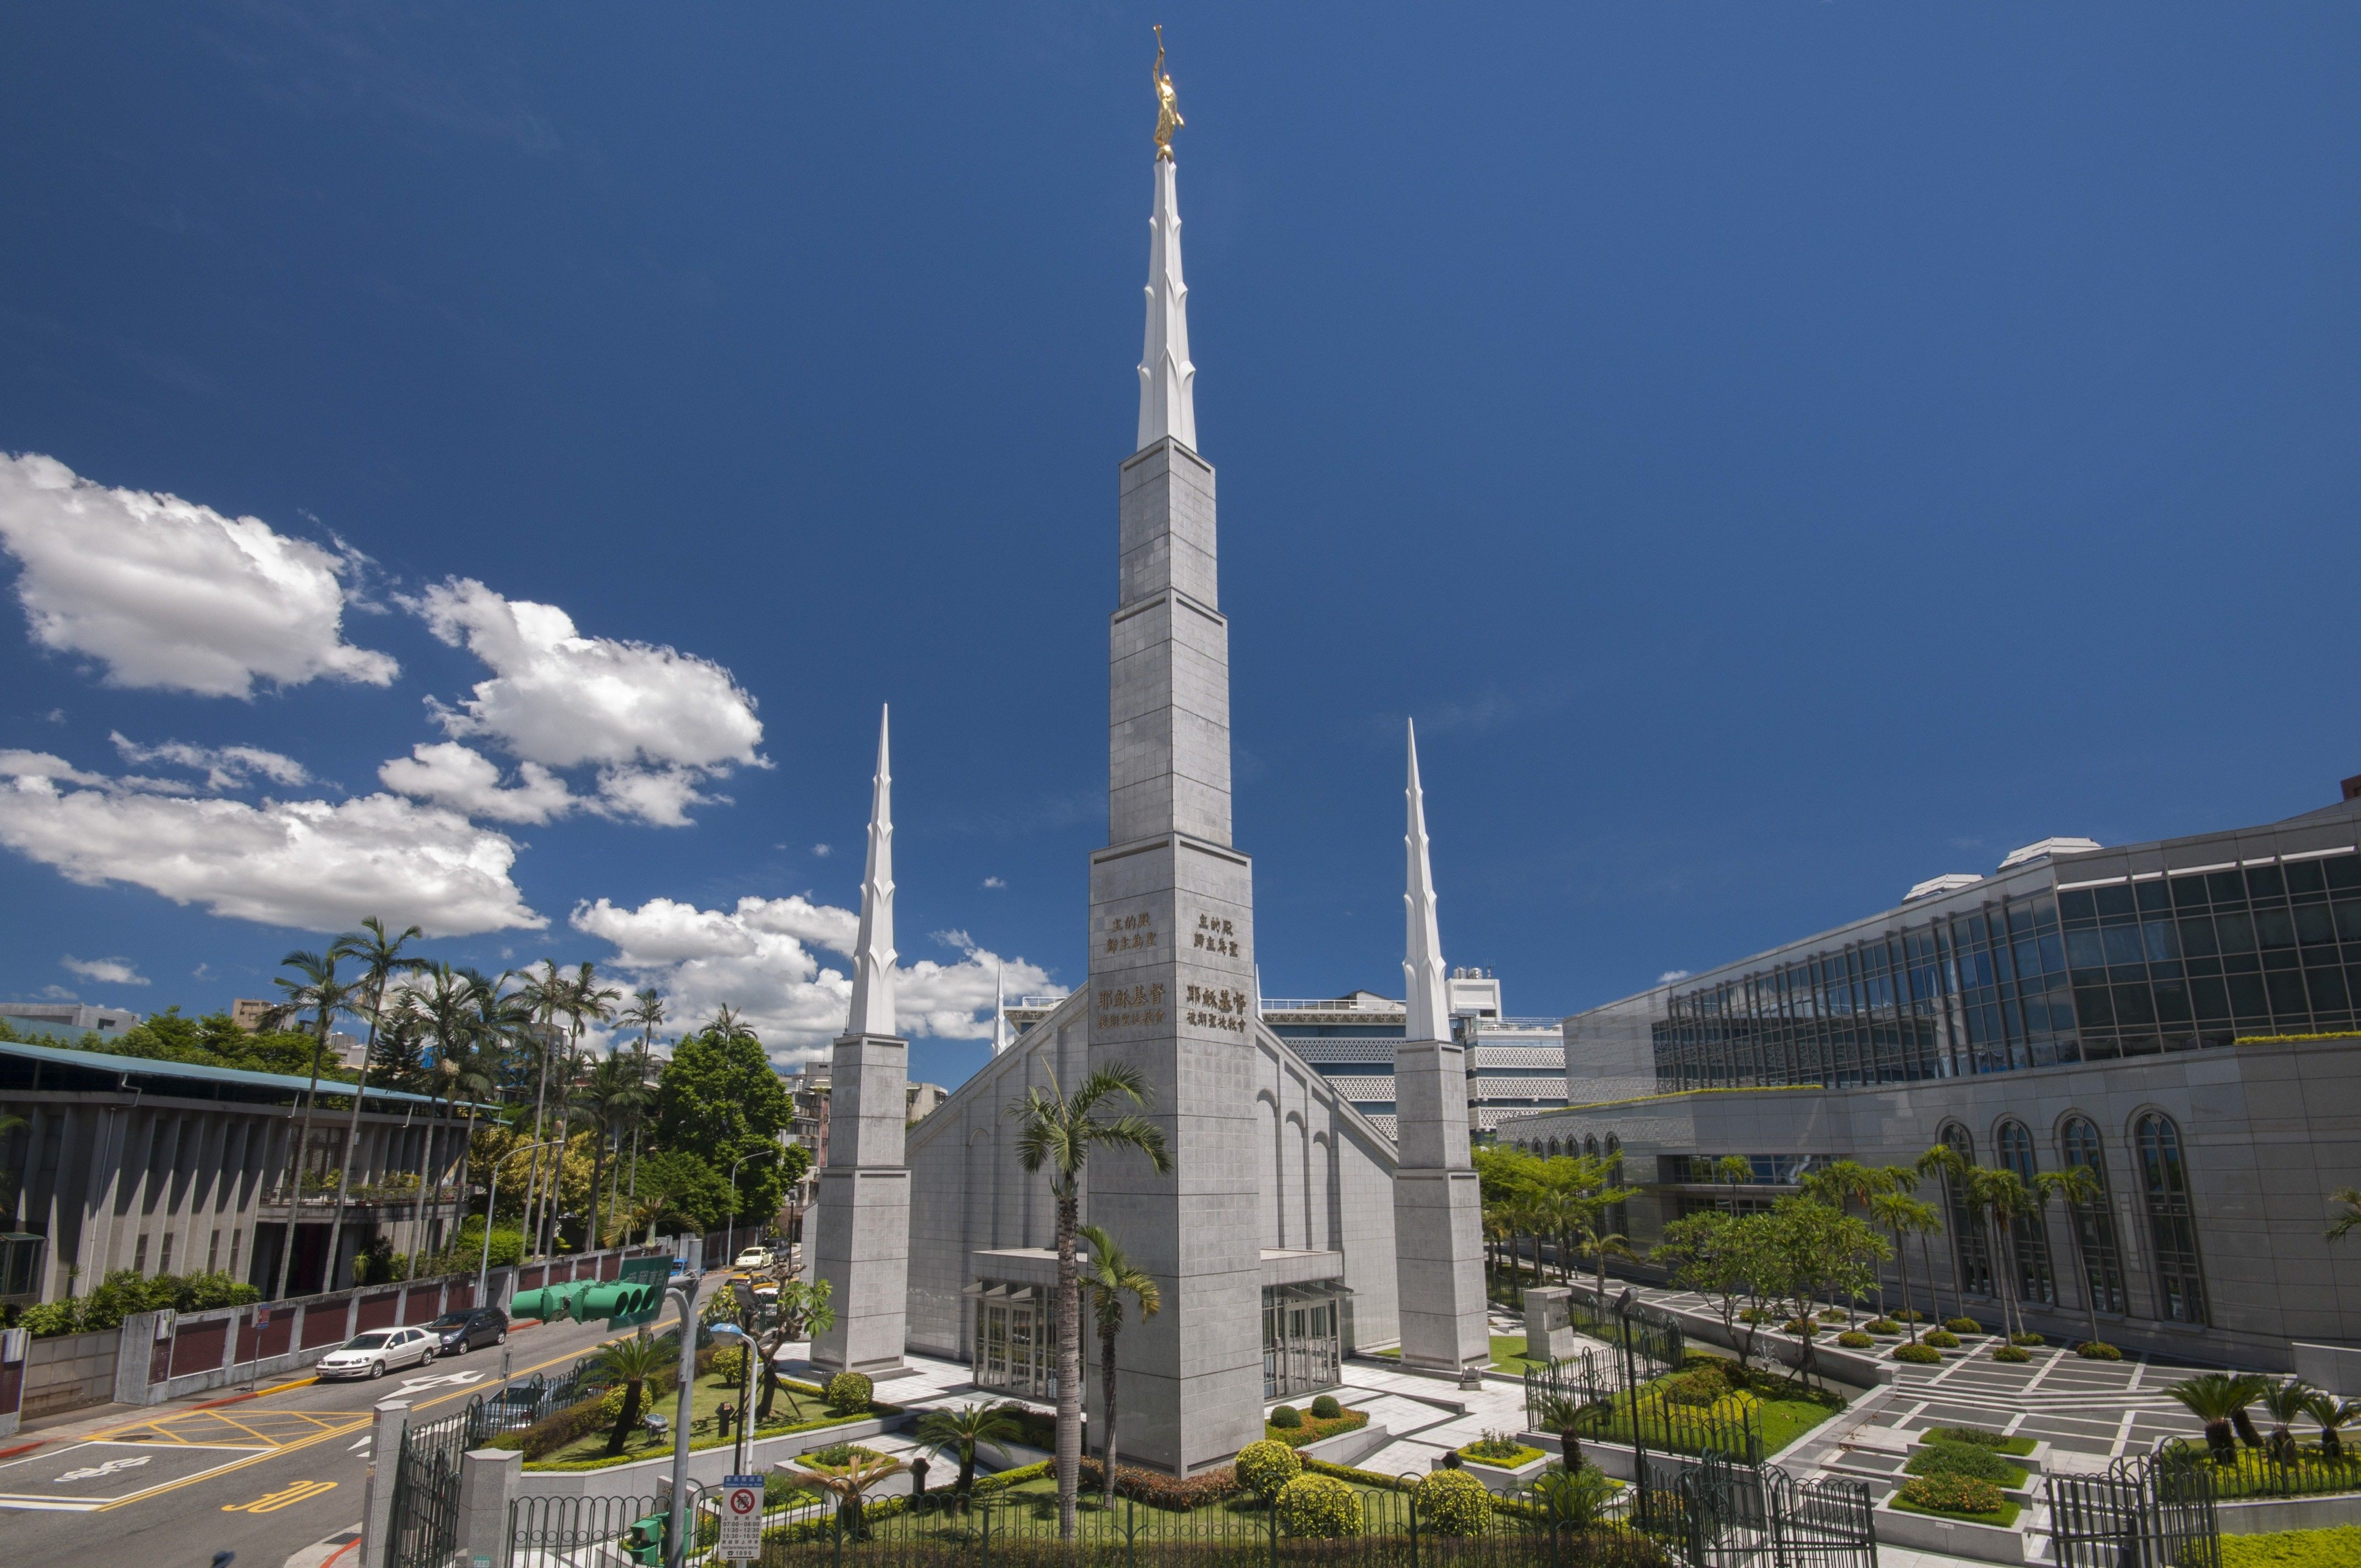 The entire Taipei Taiwan Temple, including the spires and grounds.